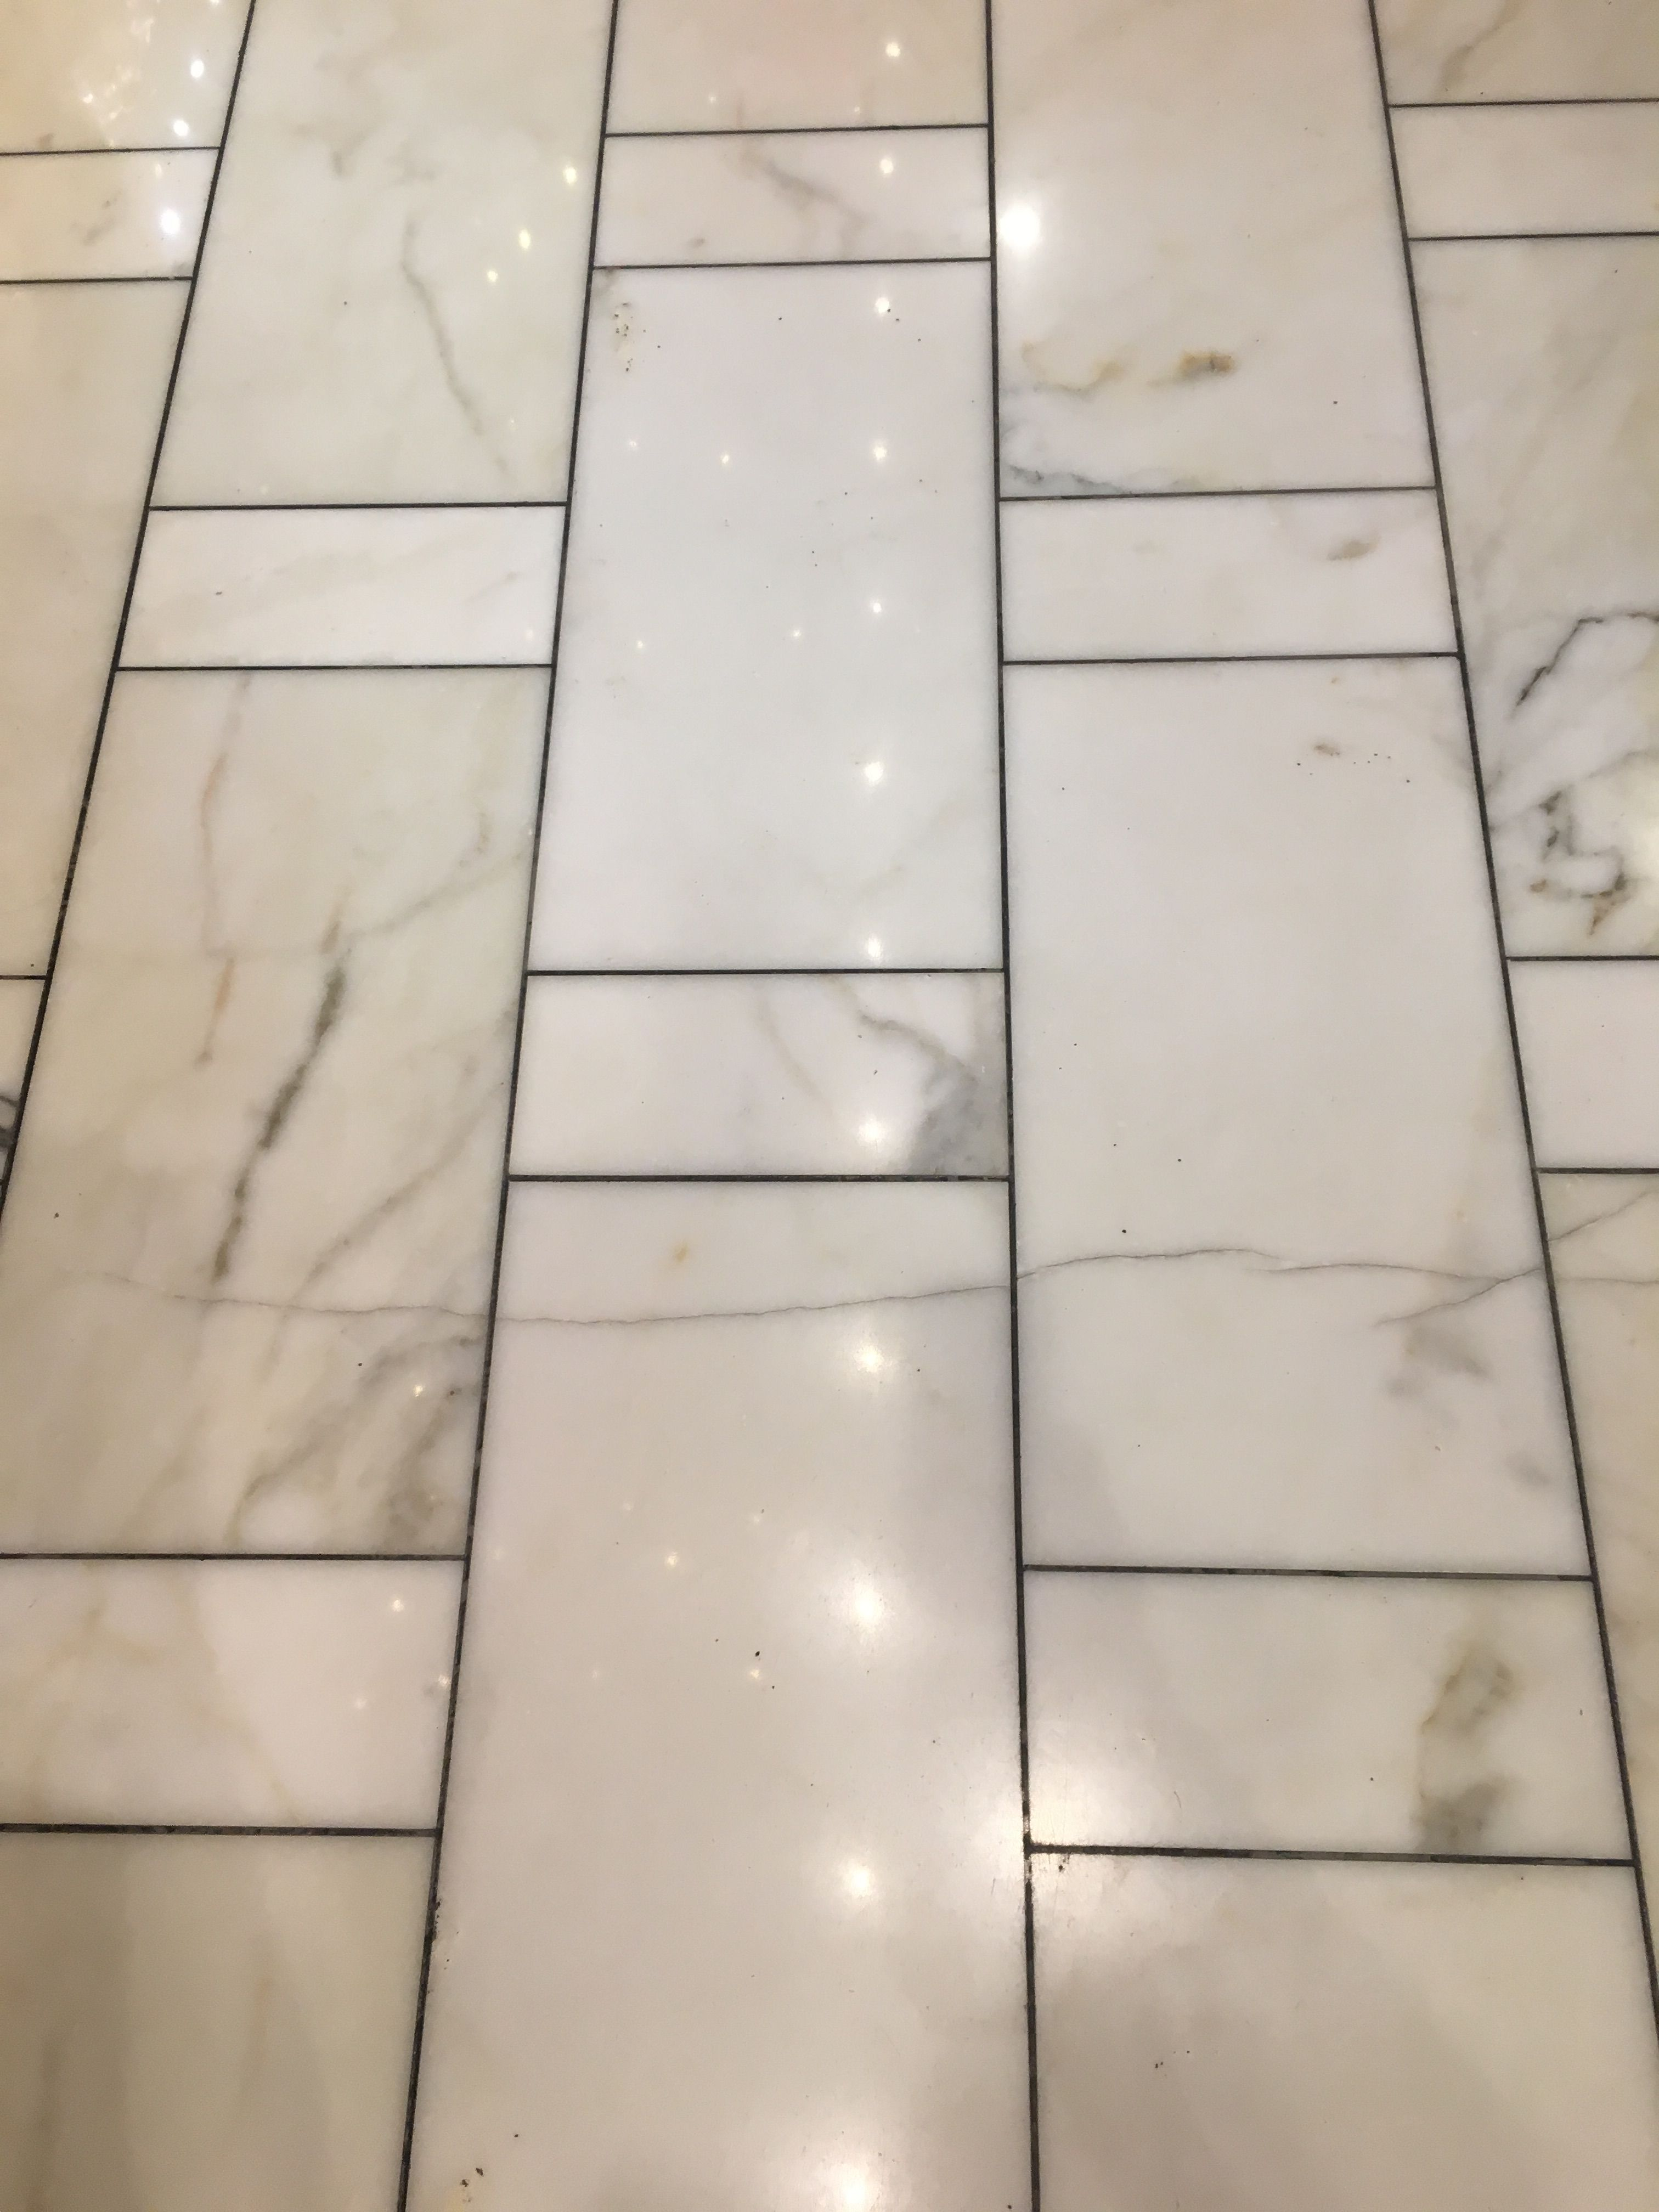 Photo 2 Those Marble Tiles At Crown Melbourne S Food Court Add Some Elegance Their